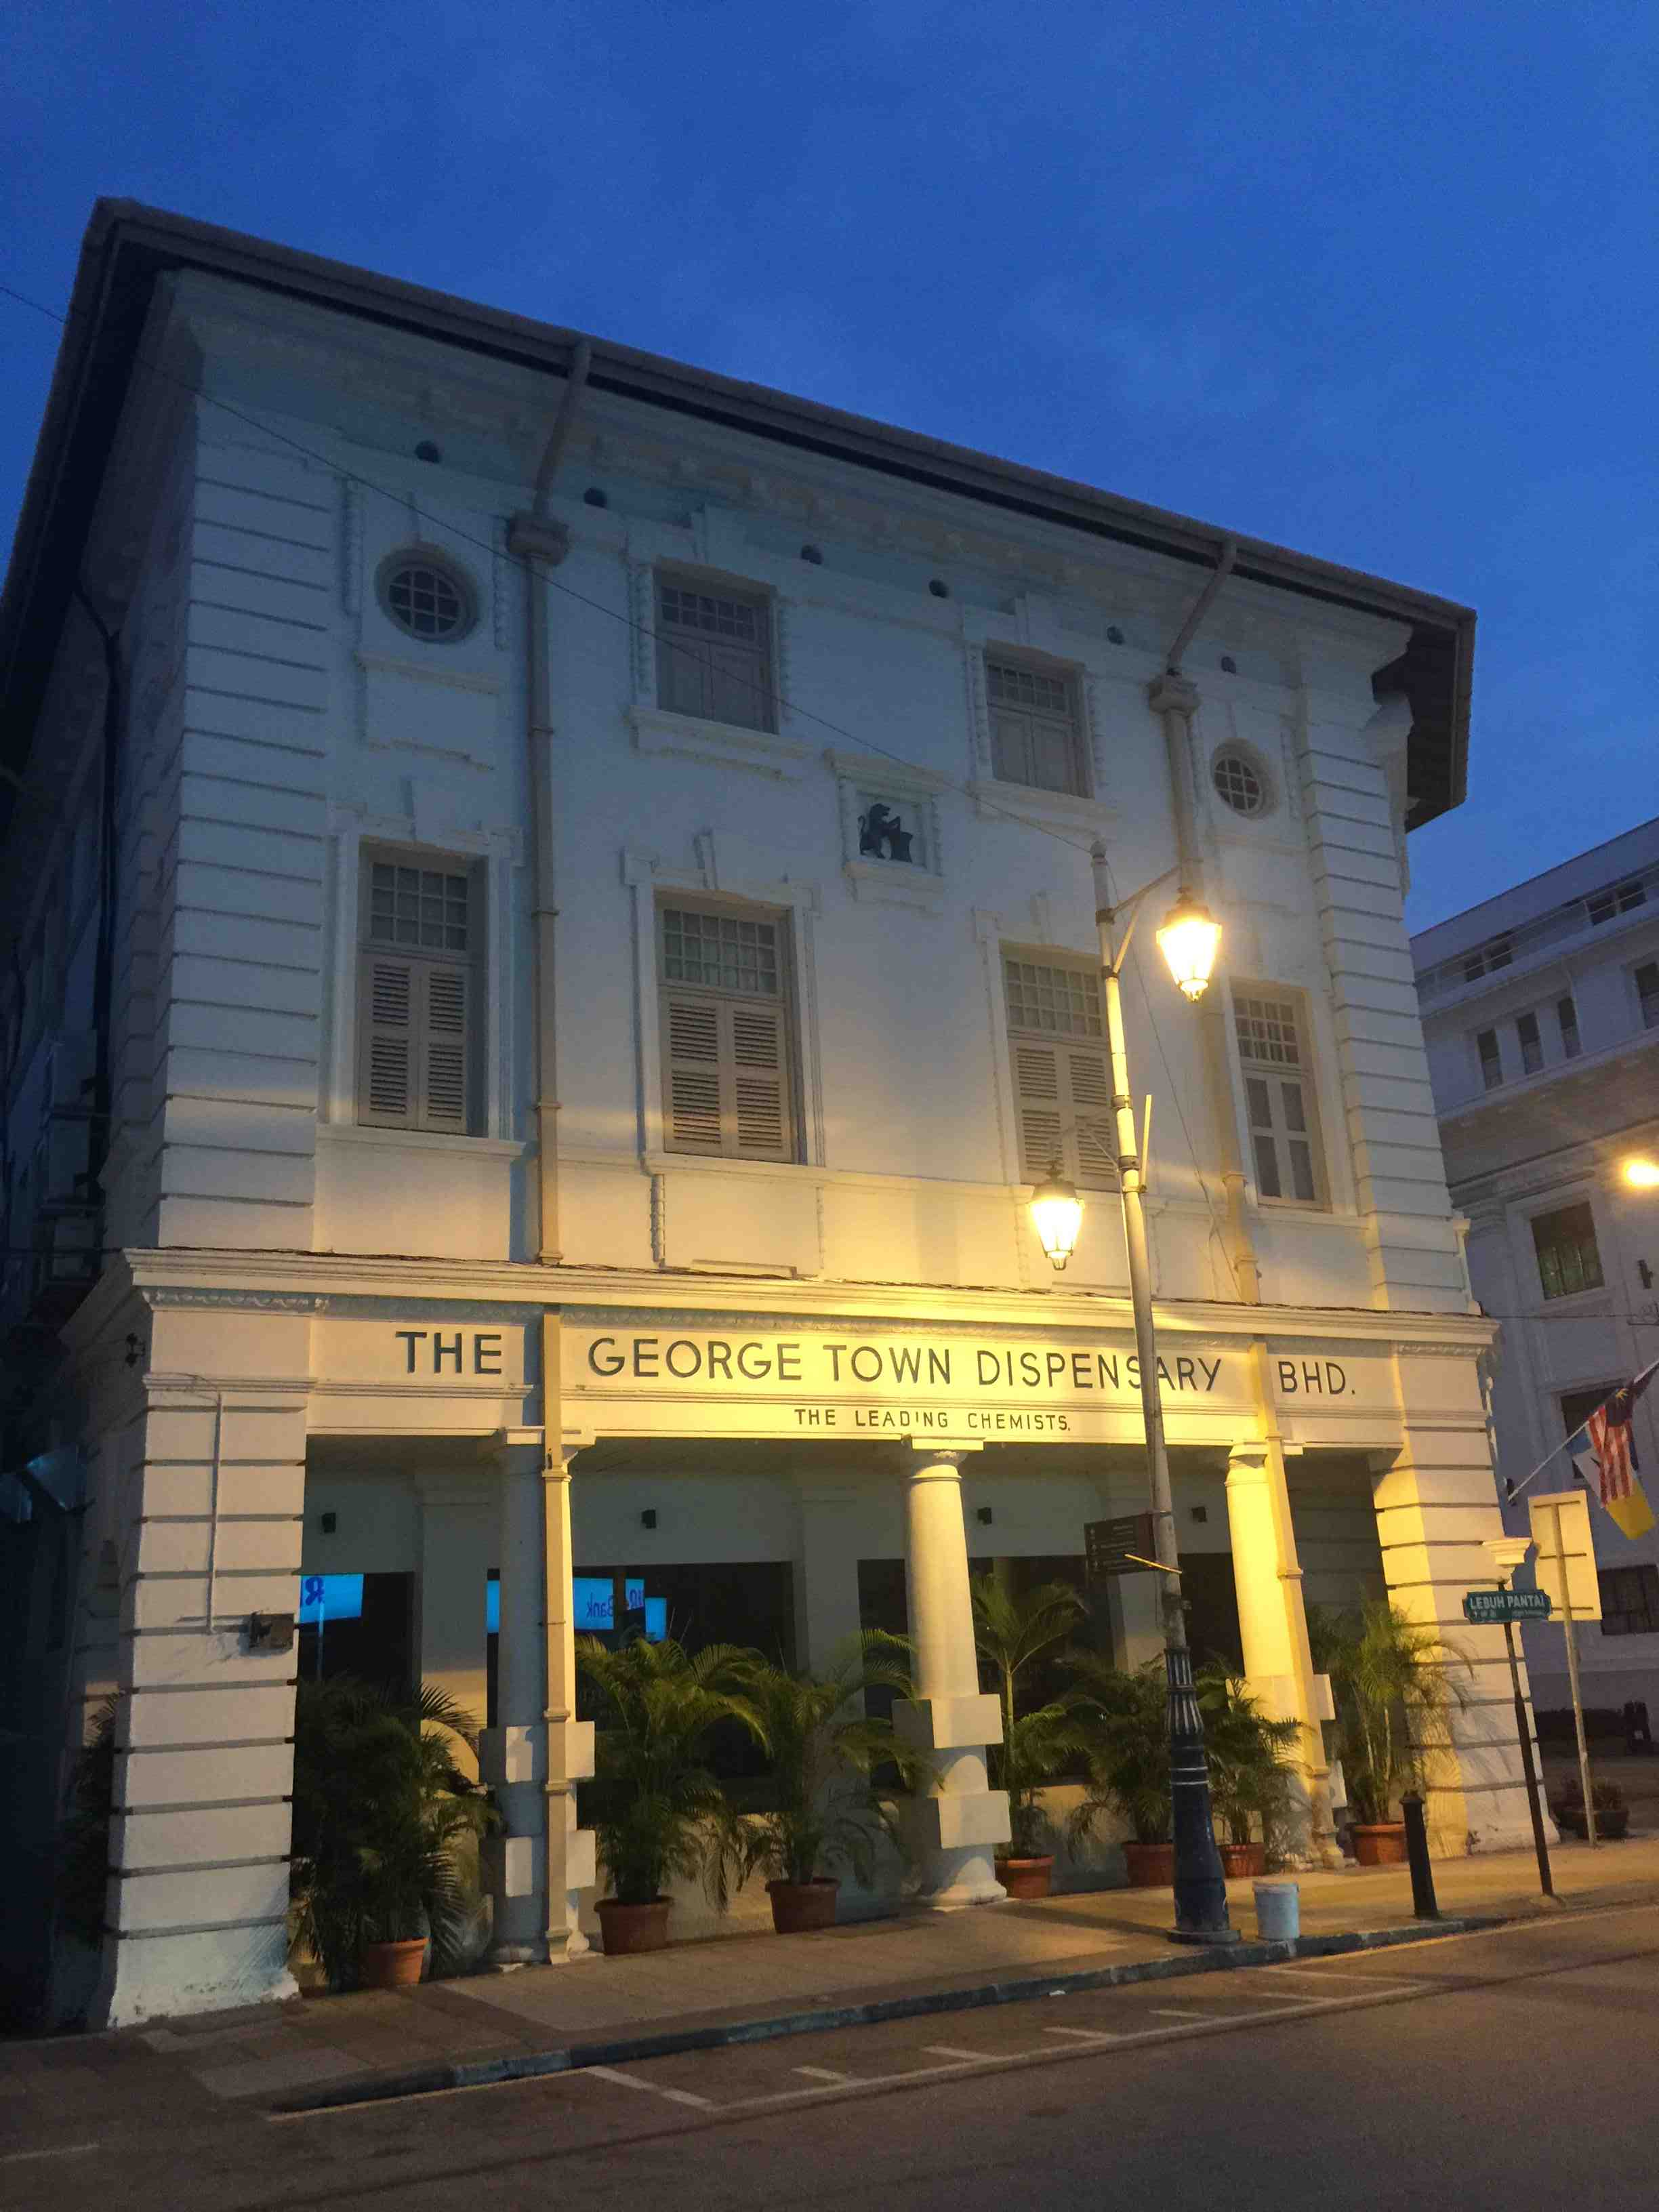 George Town Dispensary